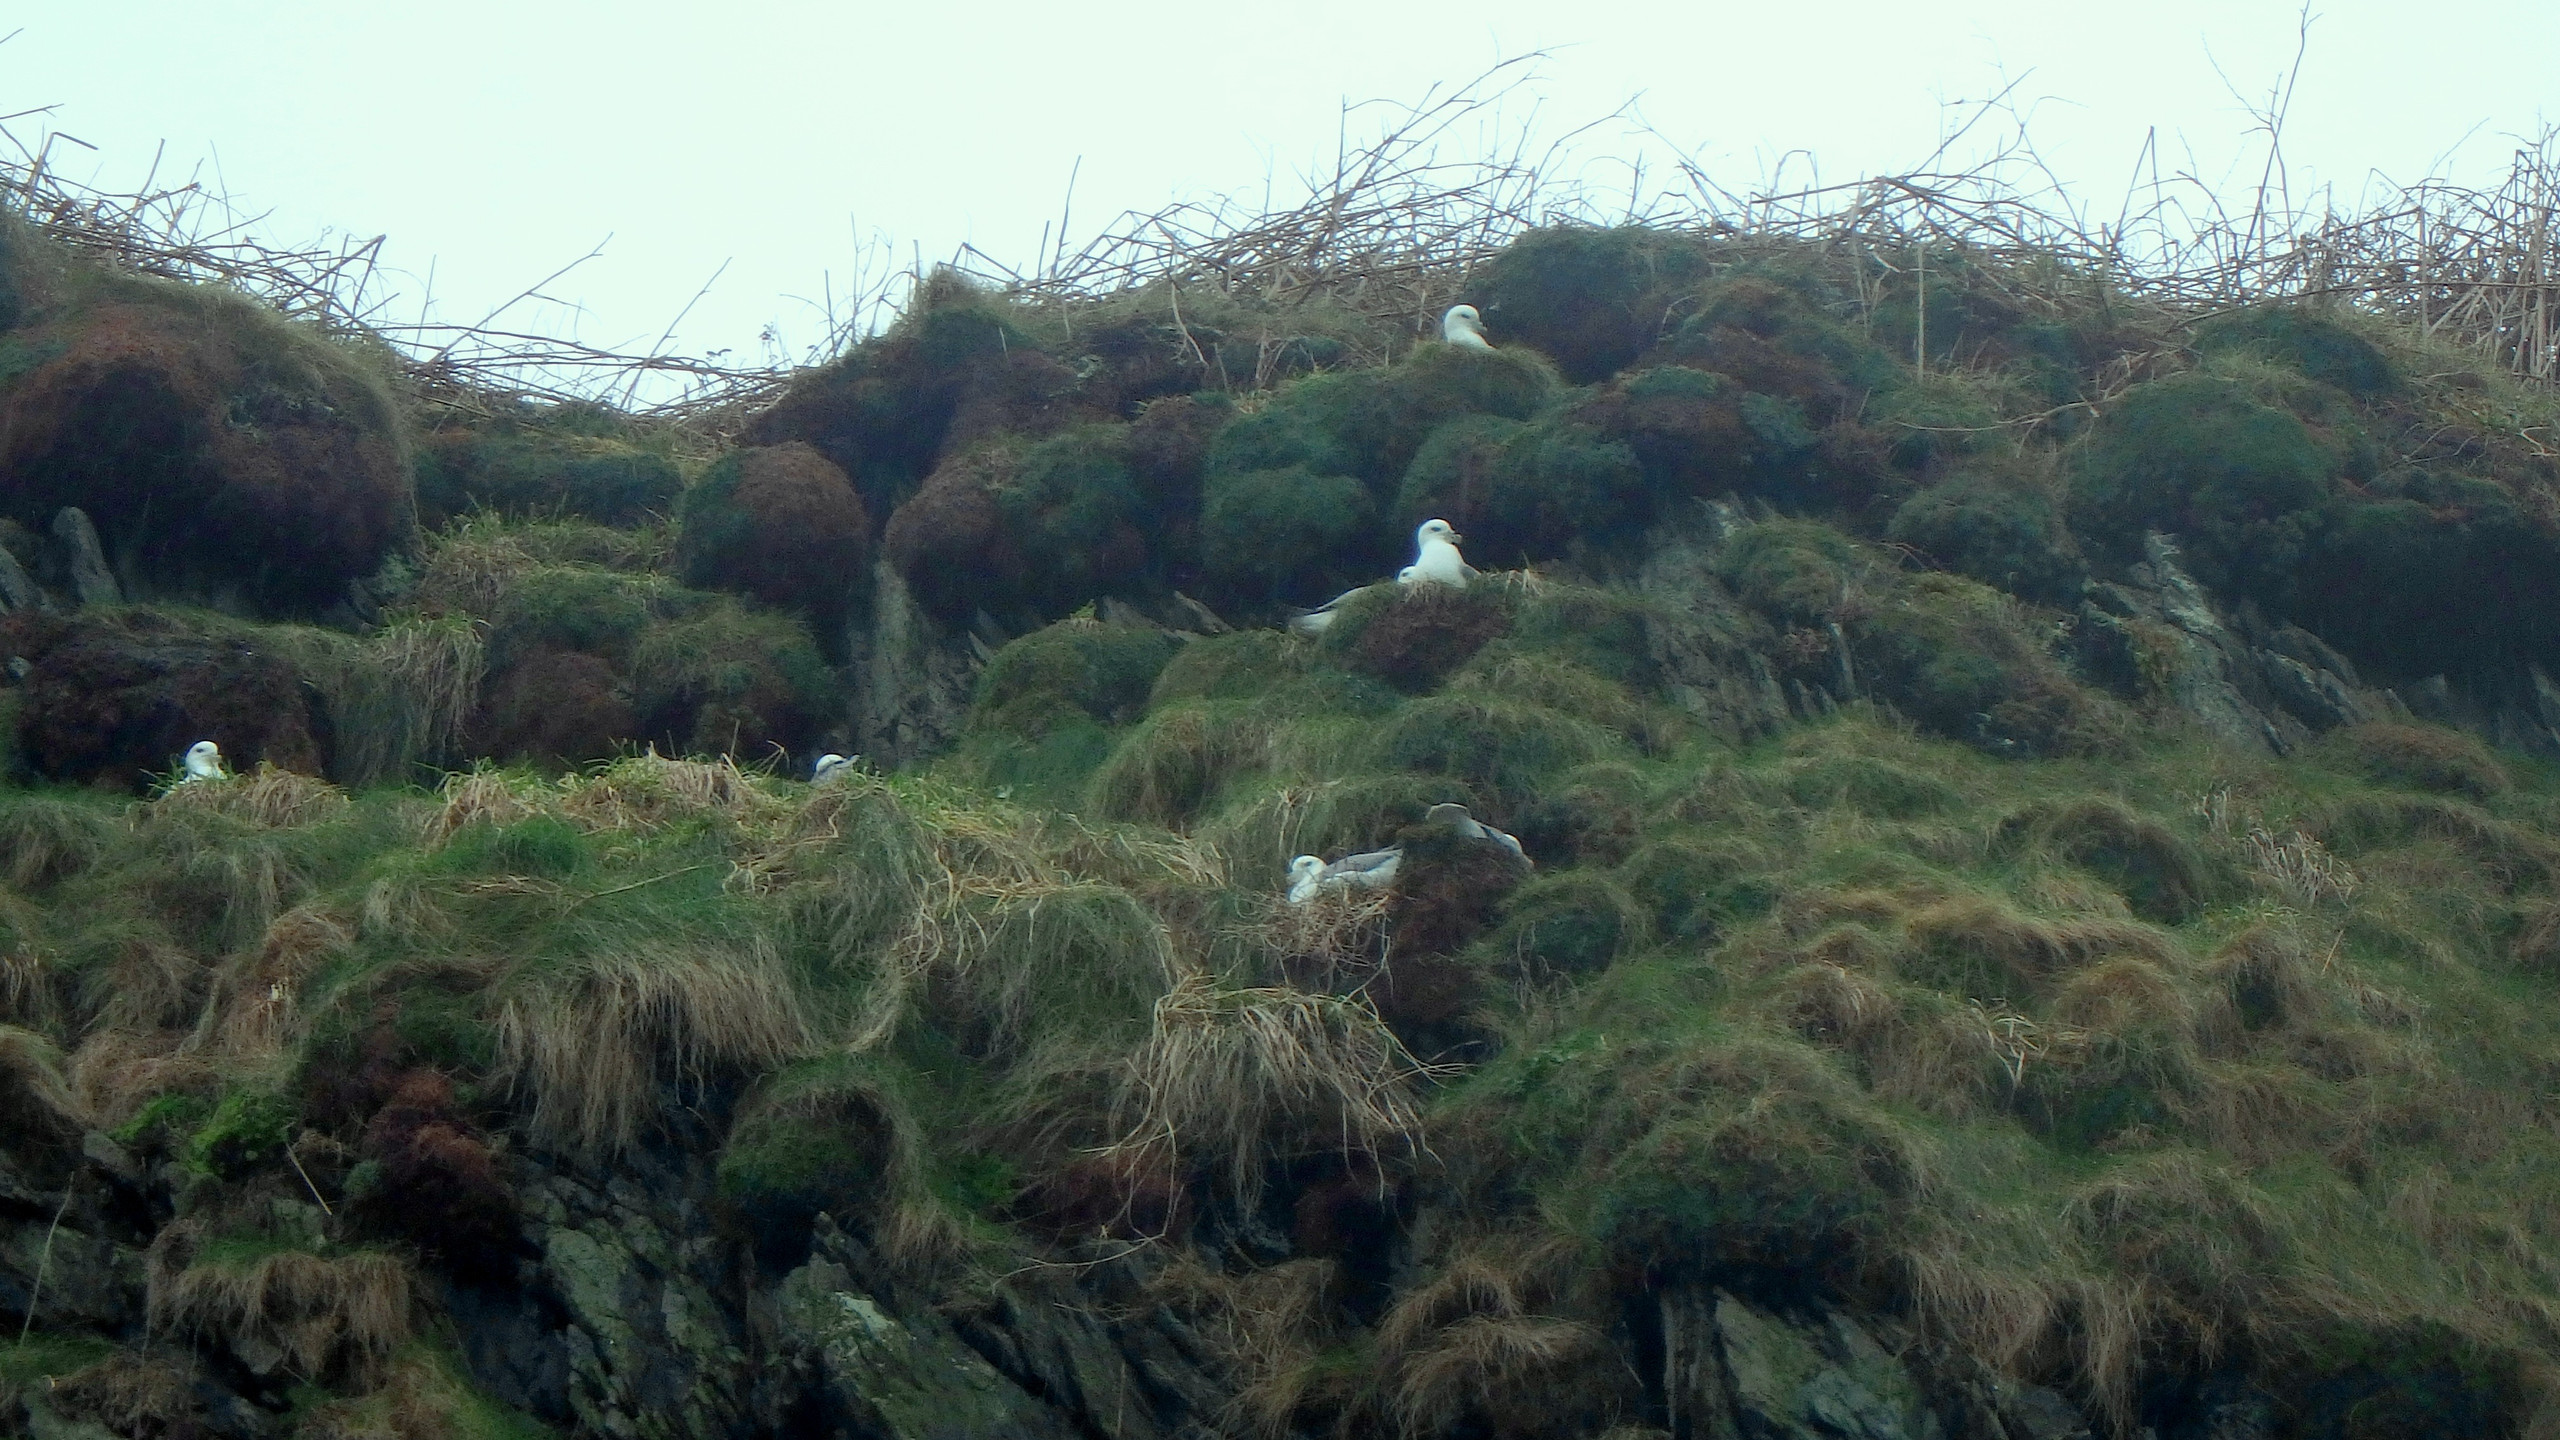 Fulmars on top of the cliff